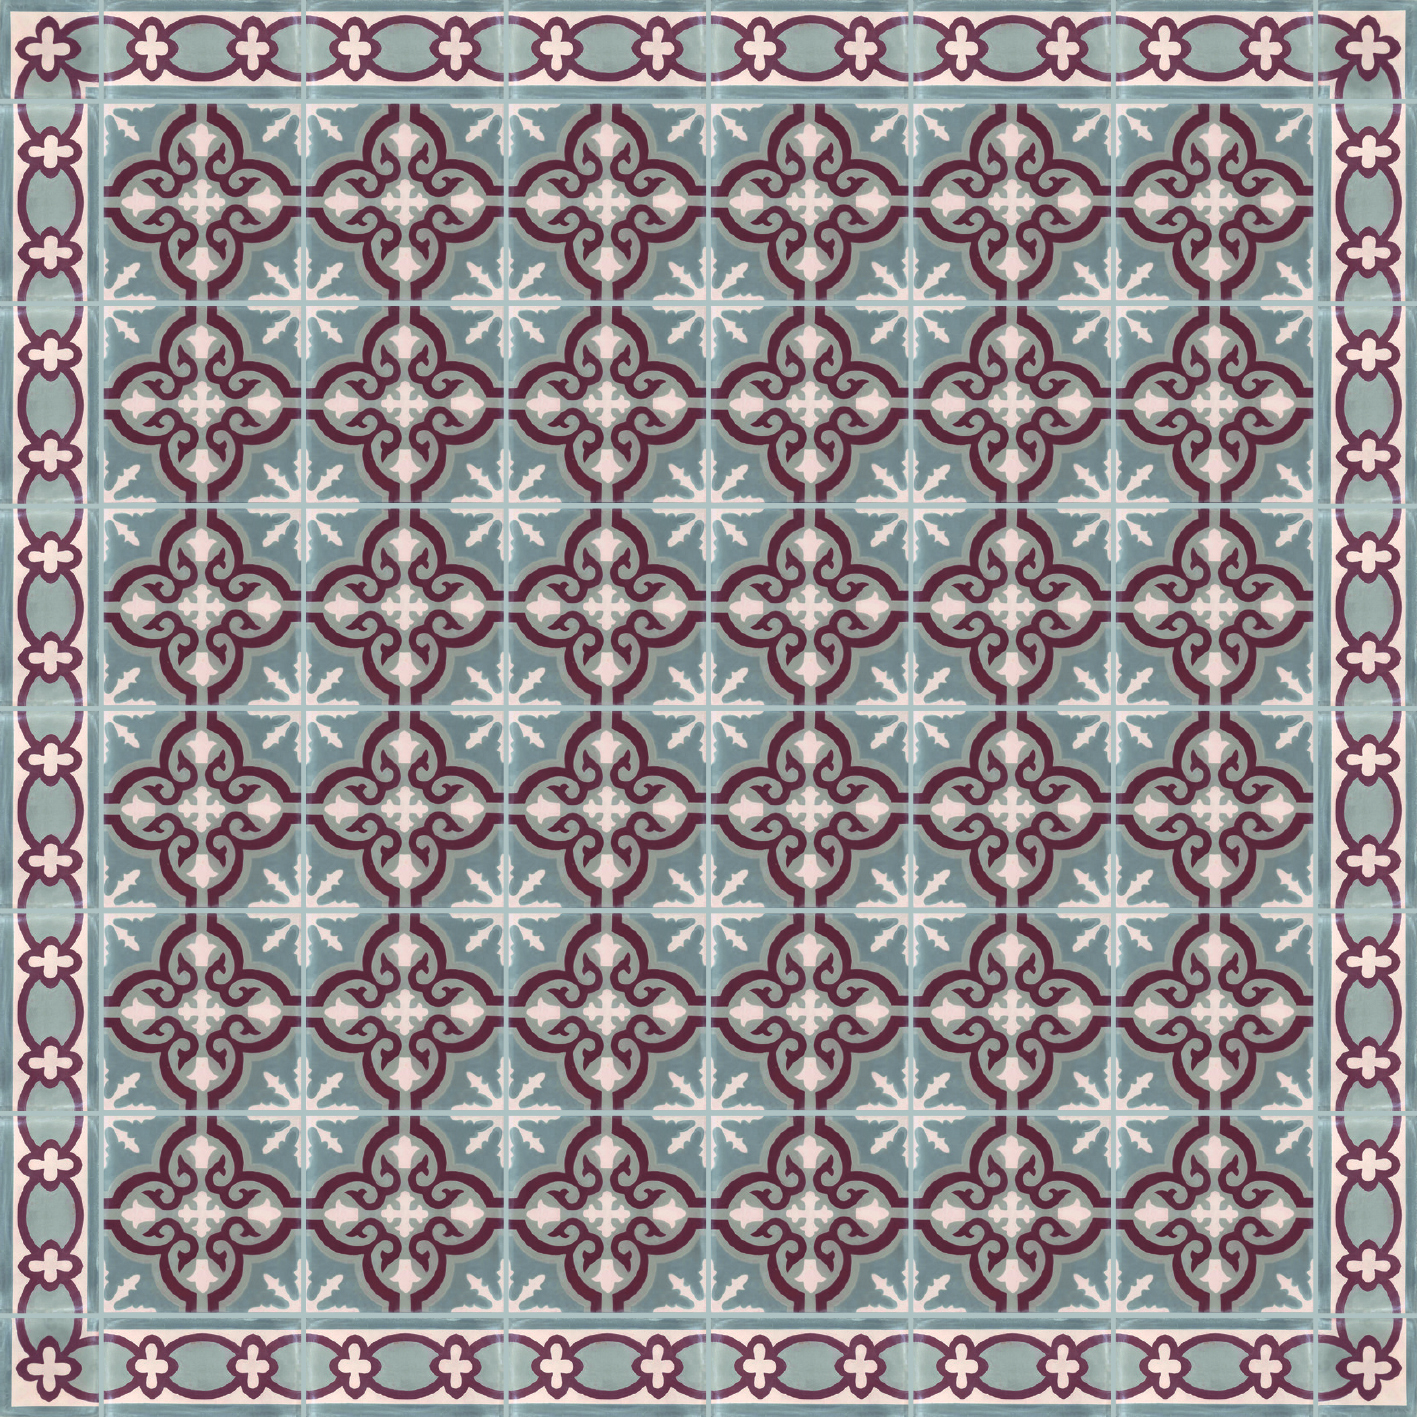 tapis_cc-14-trouv-red.jpg